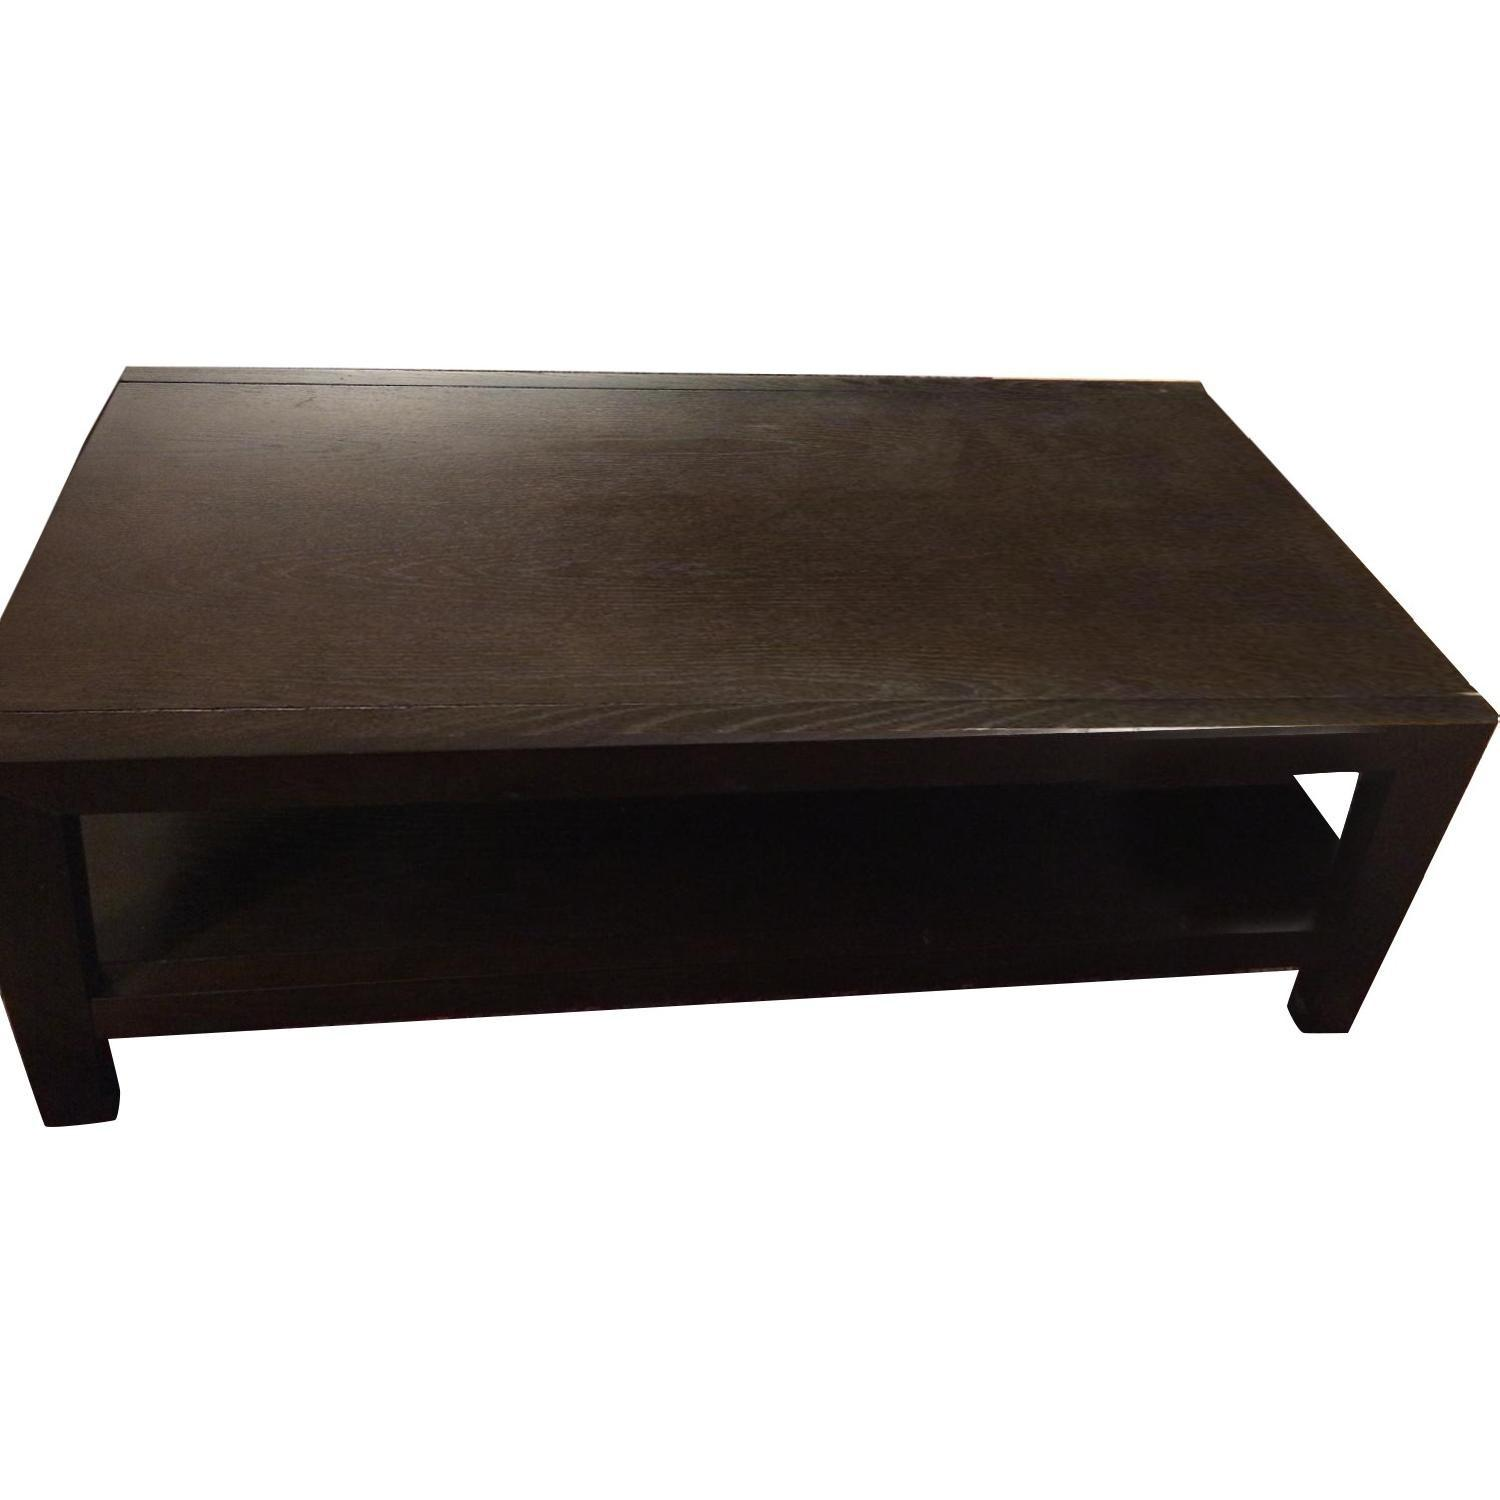 West elm coffee table aptdeco for West elm coffee table sale